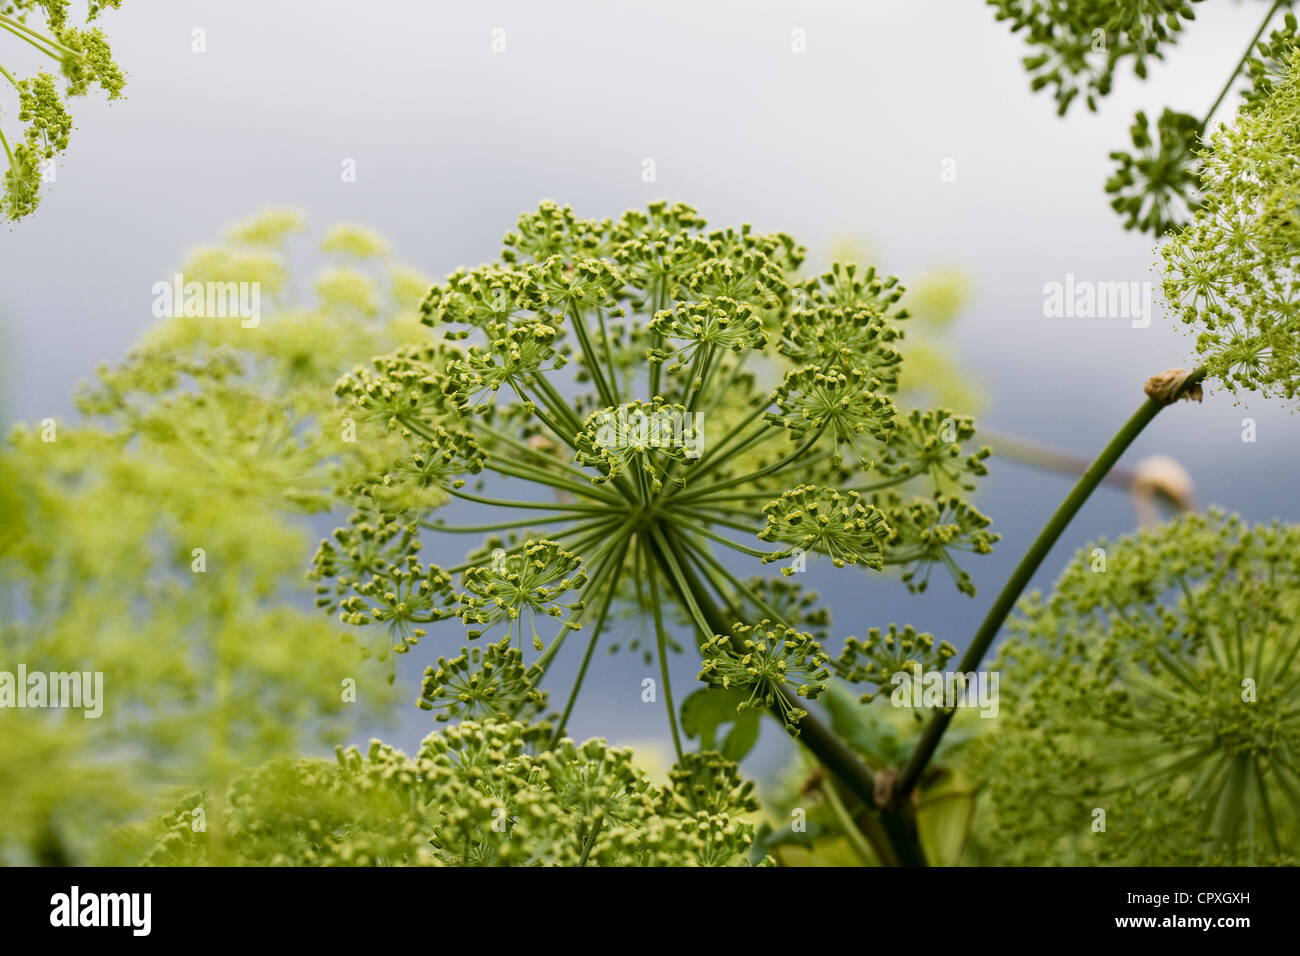 Angelica sylvestris against a stormy sky. - Stock Image